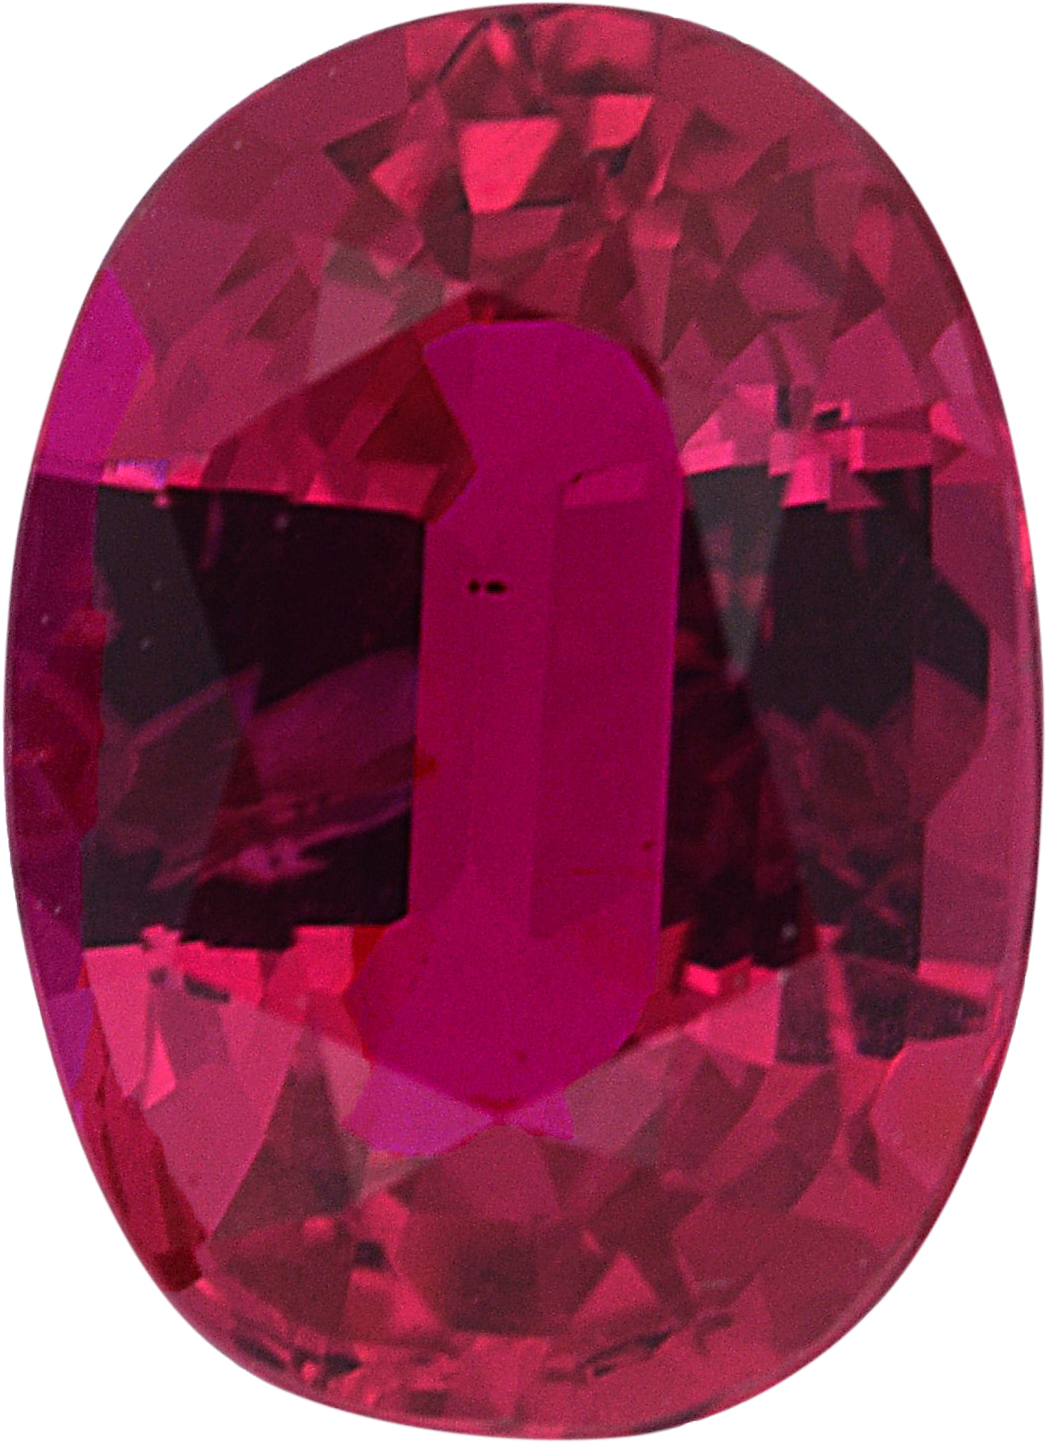 1.11 carats Ruby Loose Gemstone in Oval Cut, 7.15 x 5.15 mm